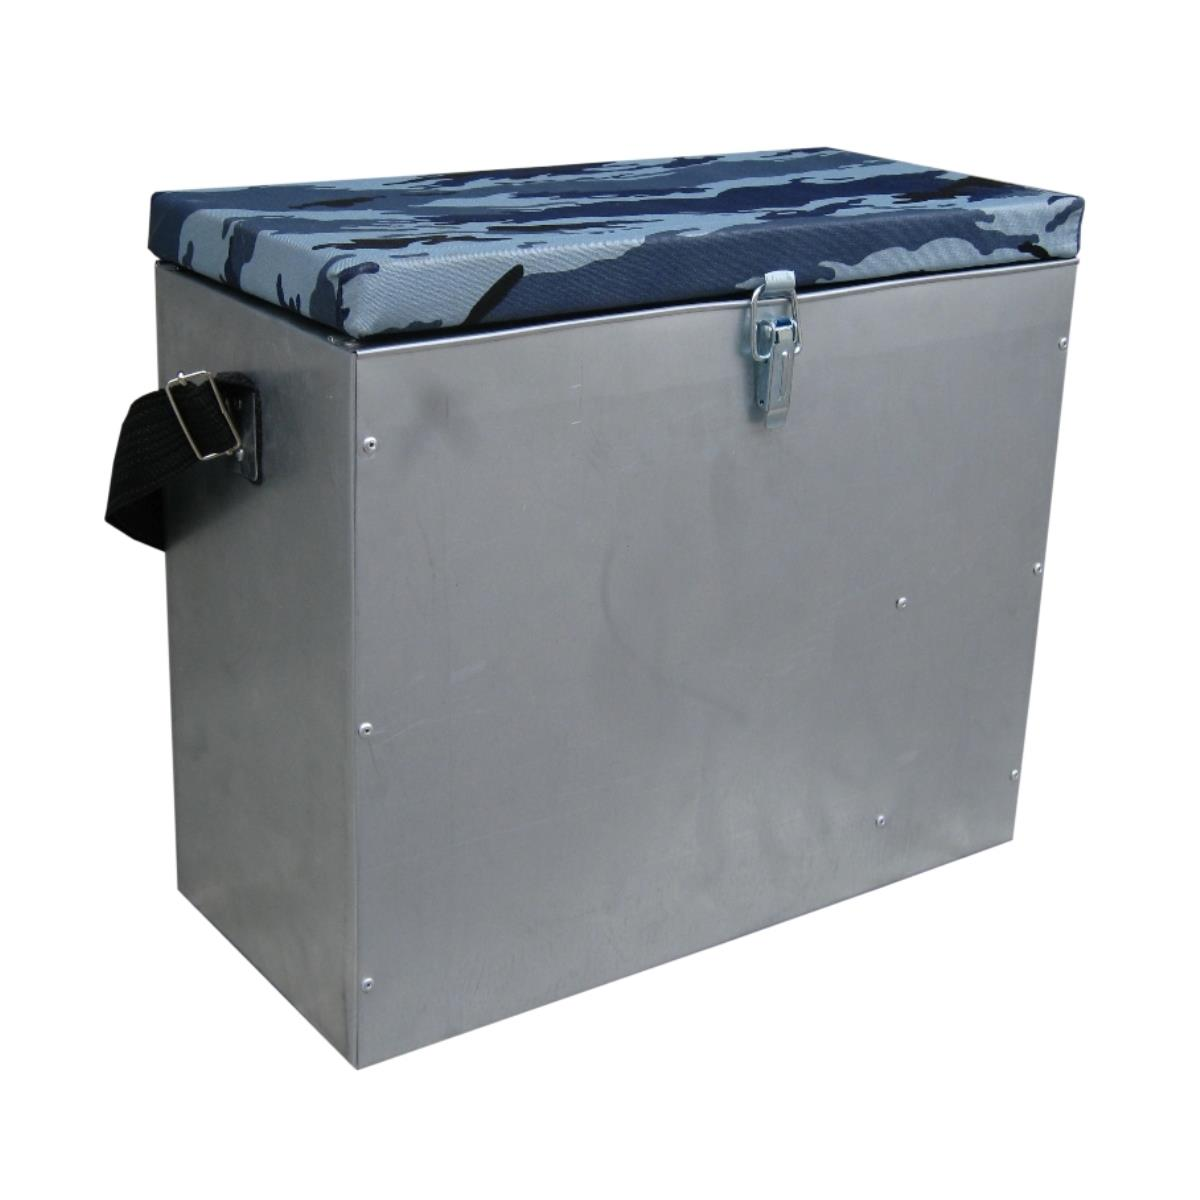 Box Winter Galvanized (23л) Helios Roomy Box With Warm Cap, Designed For Storage Fishing Tackle